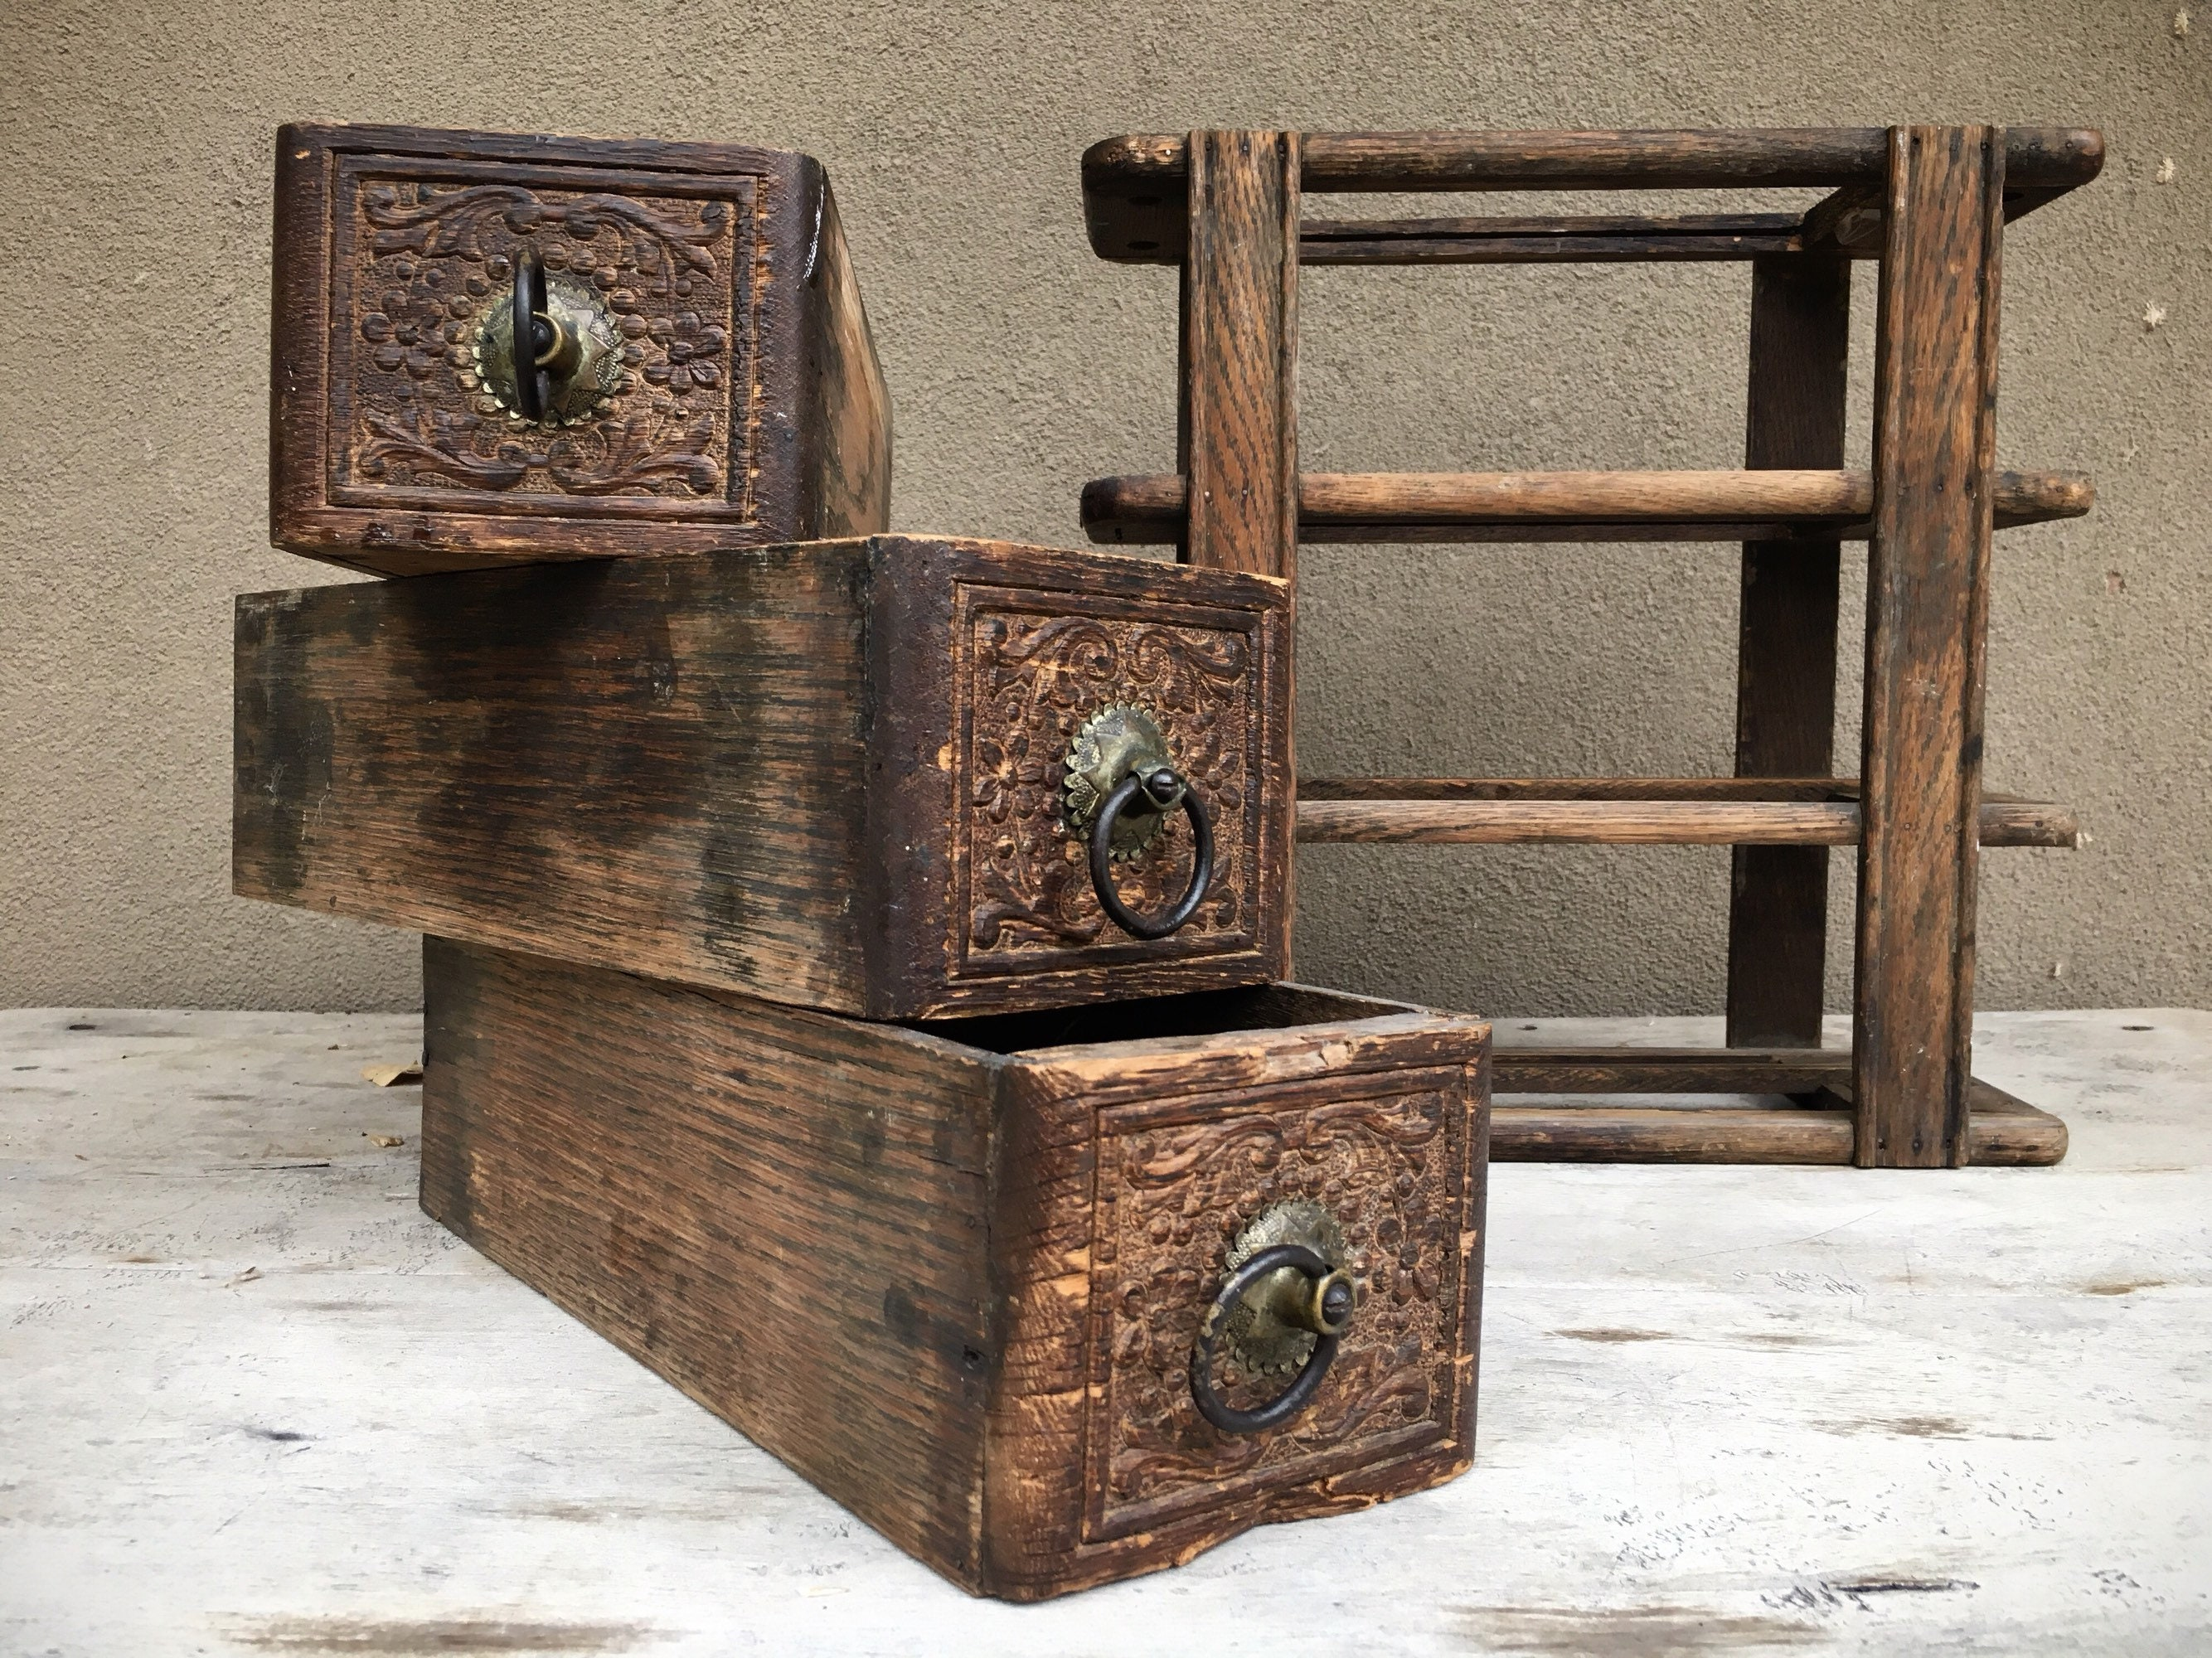 Old Rustic Sewing Machine Wood Drawers In Frame, Rustic